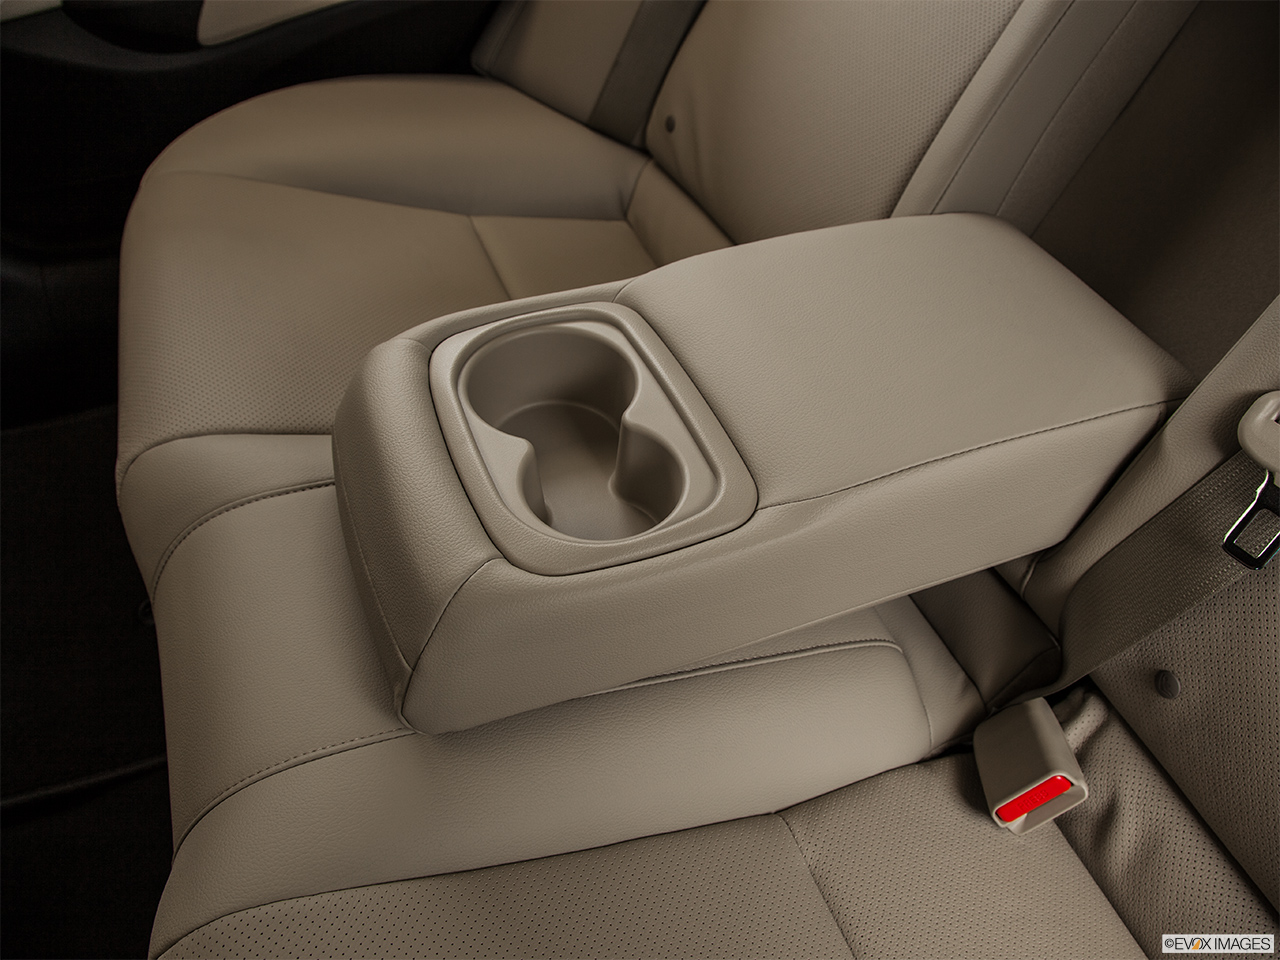 2014 Acura ILX Hybrid Base Rear center console with closed lid from driver's side looking down.